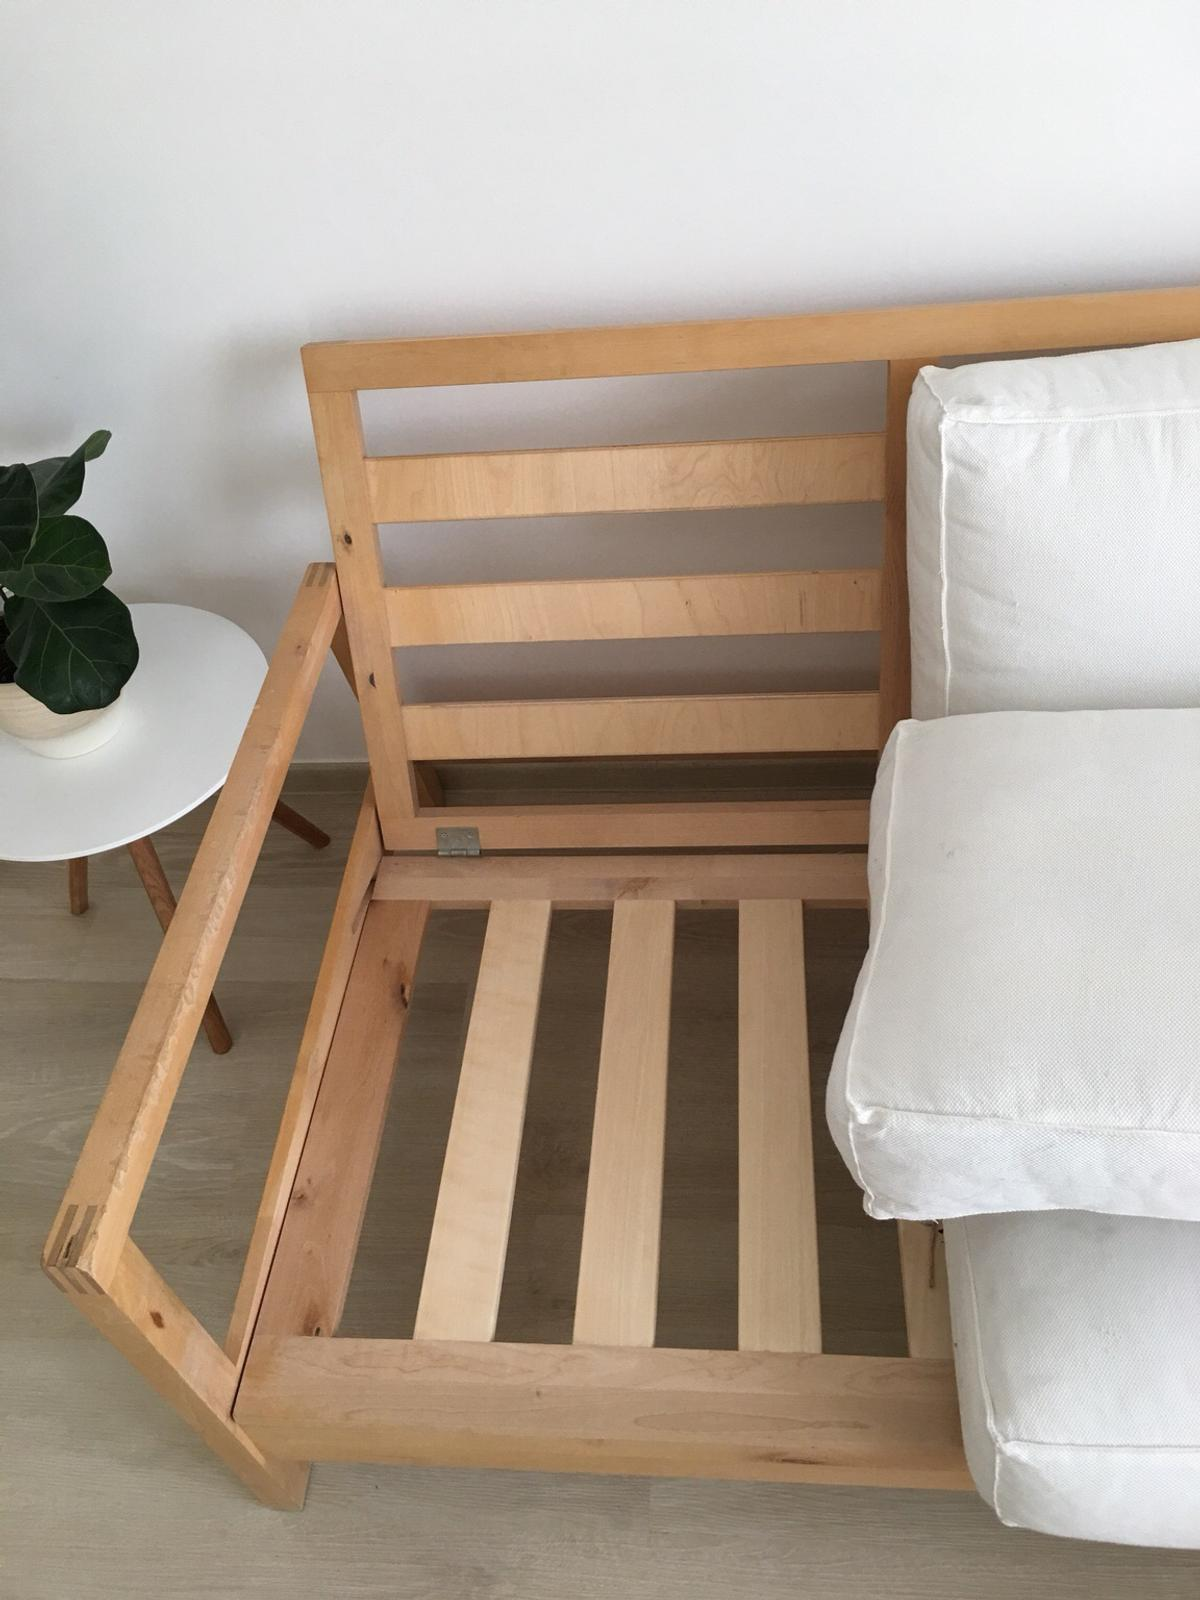 Sofa Couch 2er Weiss Holz Ikea In 16540 Hohen Neuendorf For 50 00 For Sale Shpock